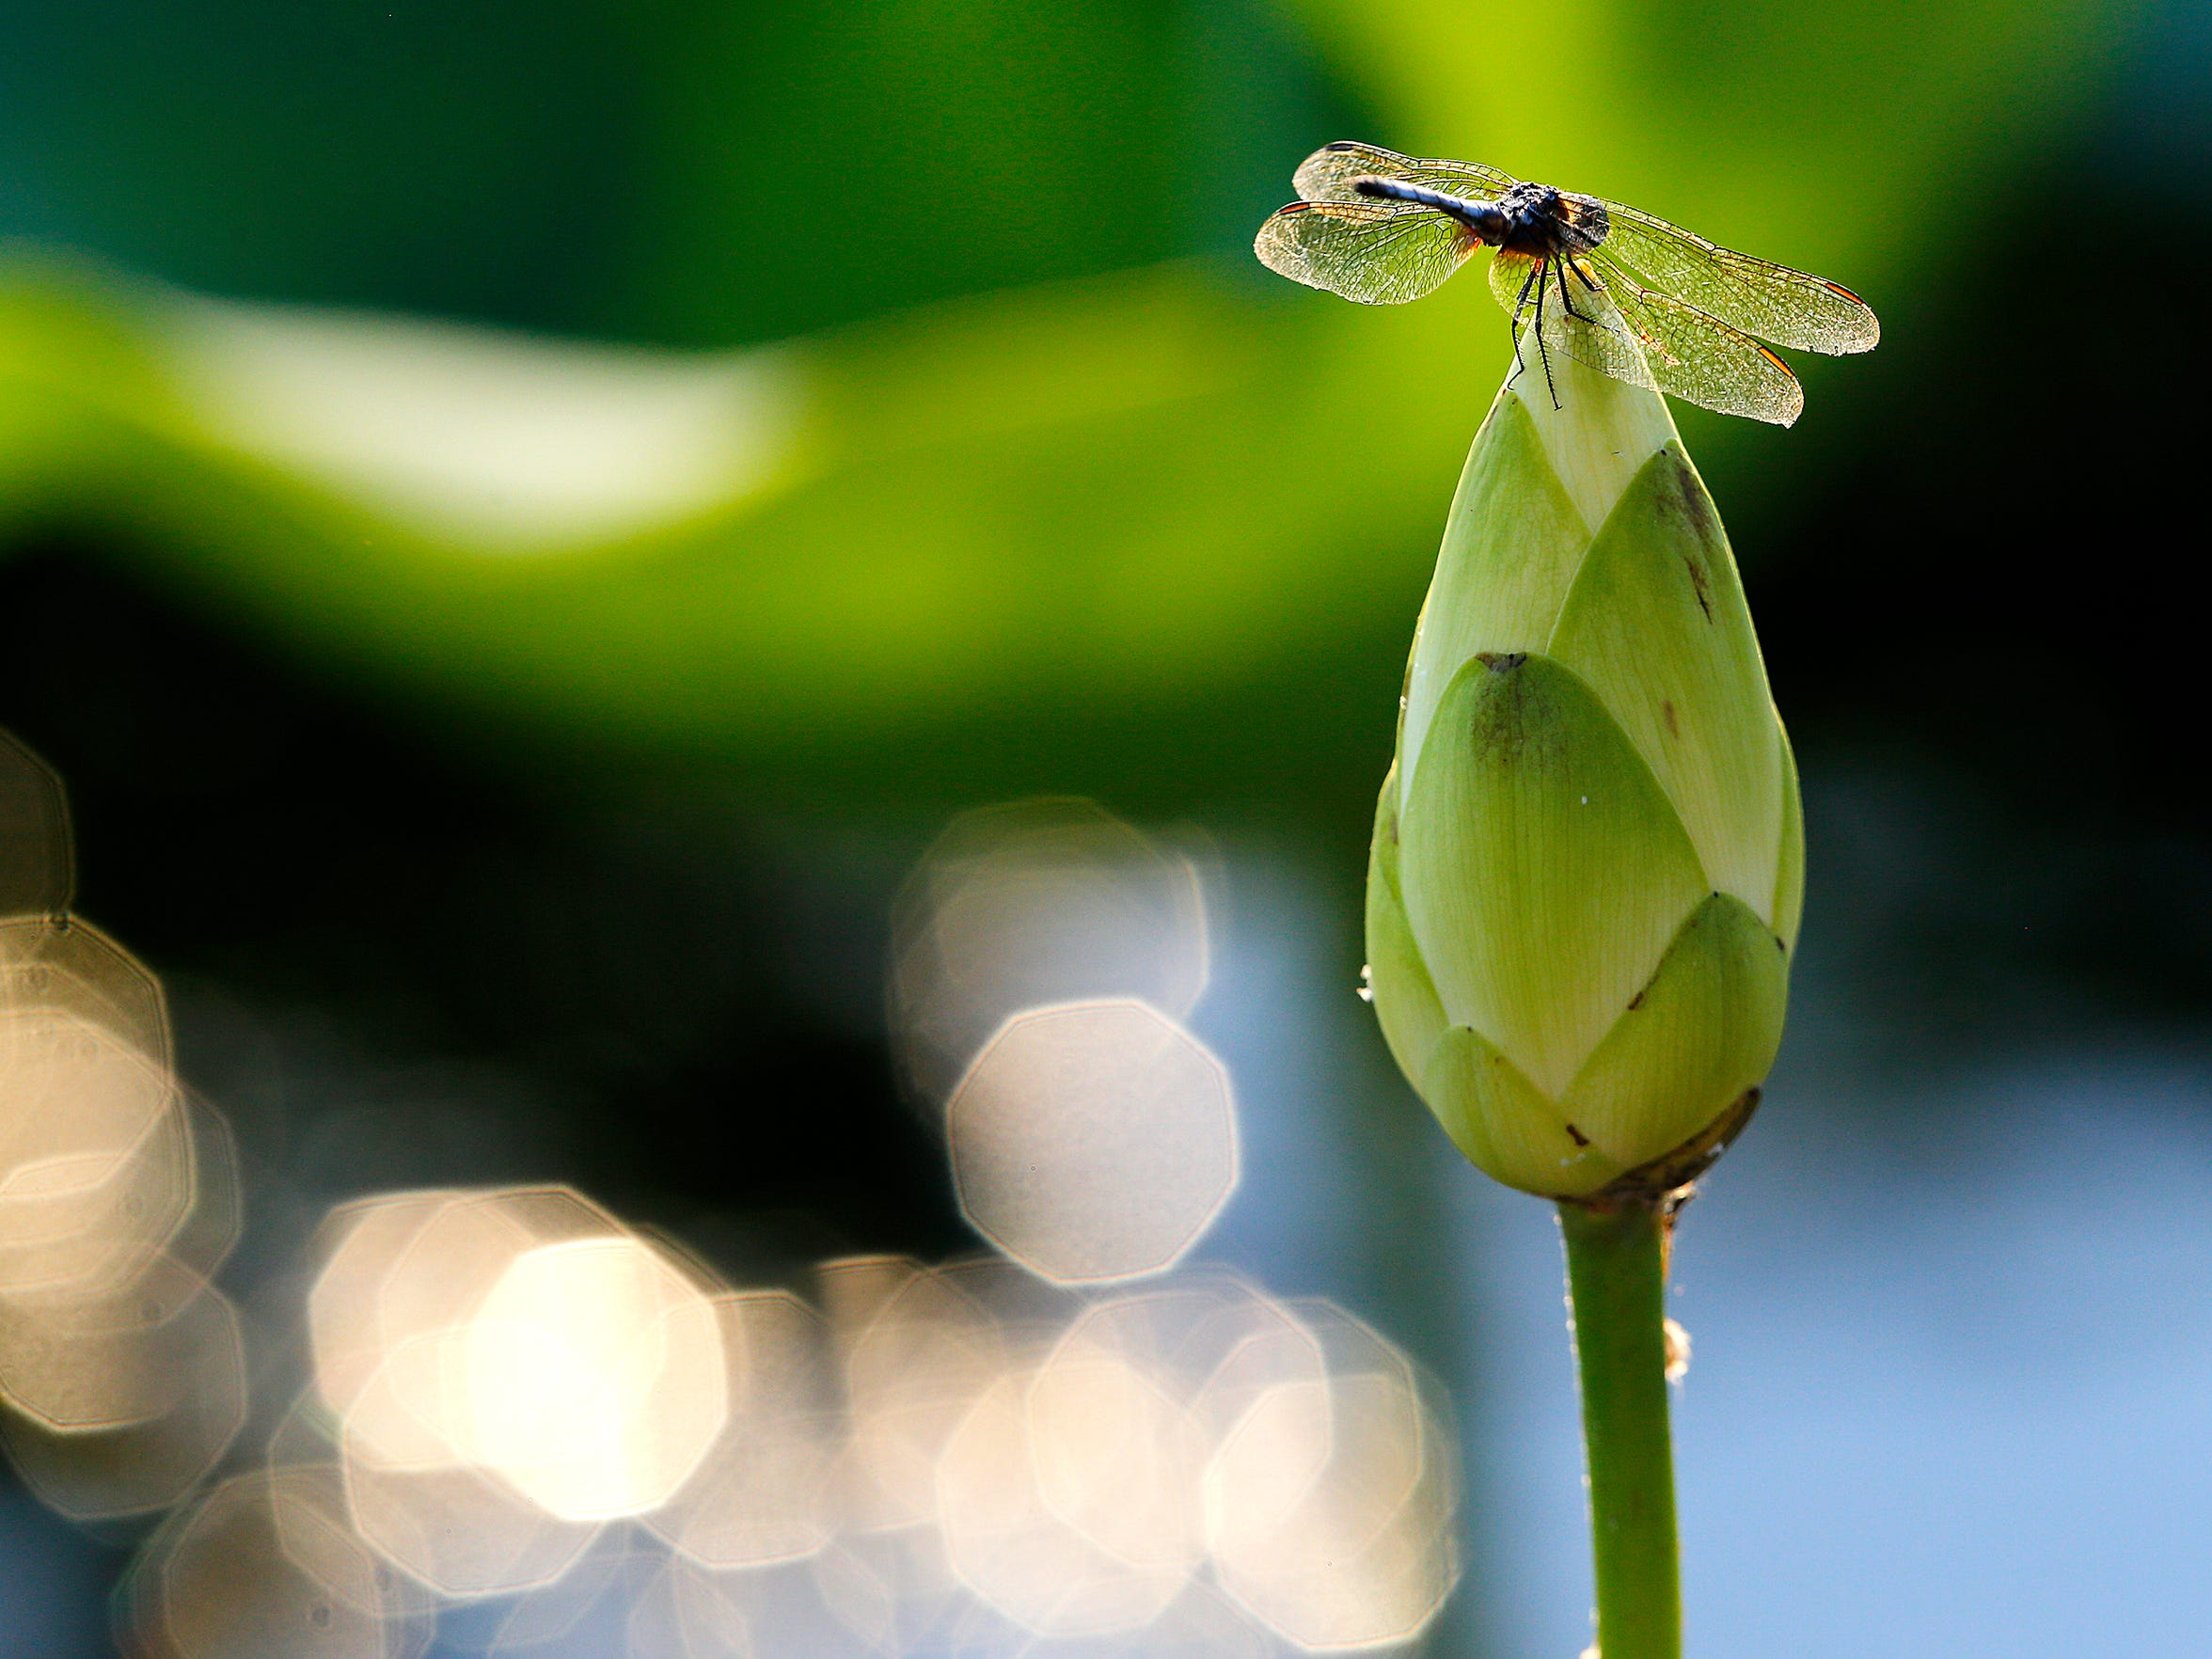 A dragonfly perches atop a closed flower from a water